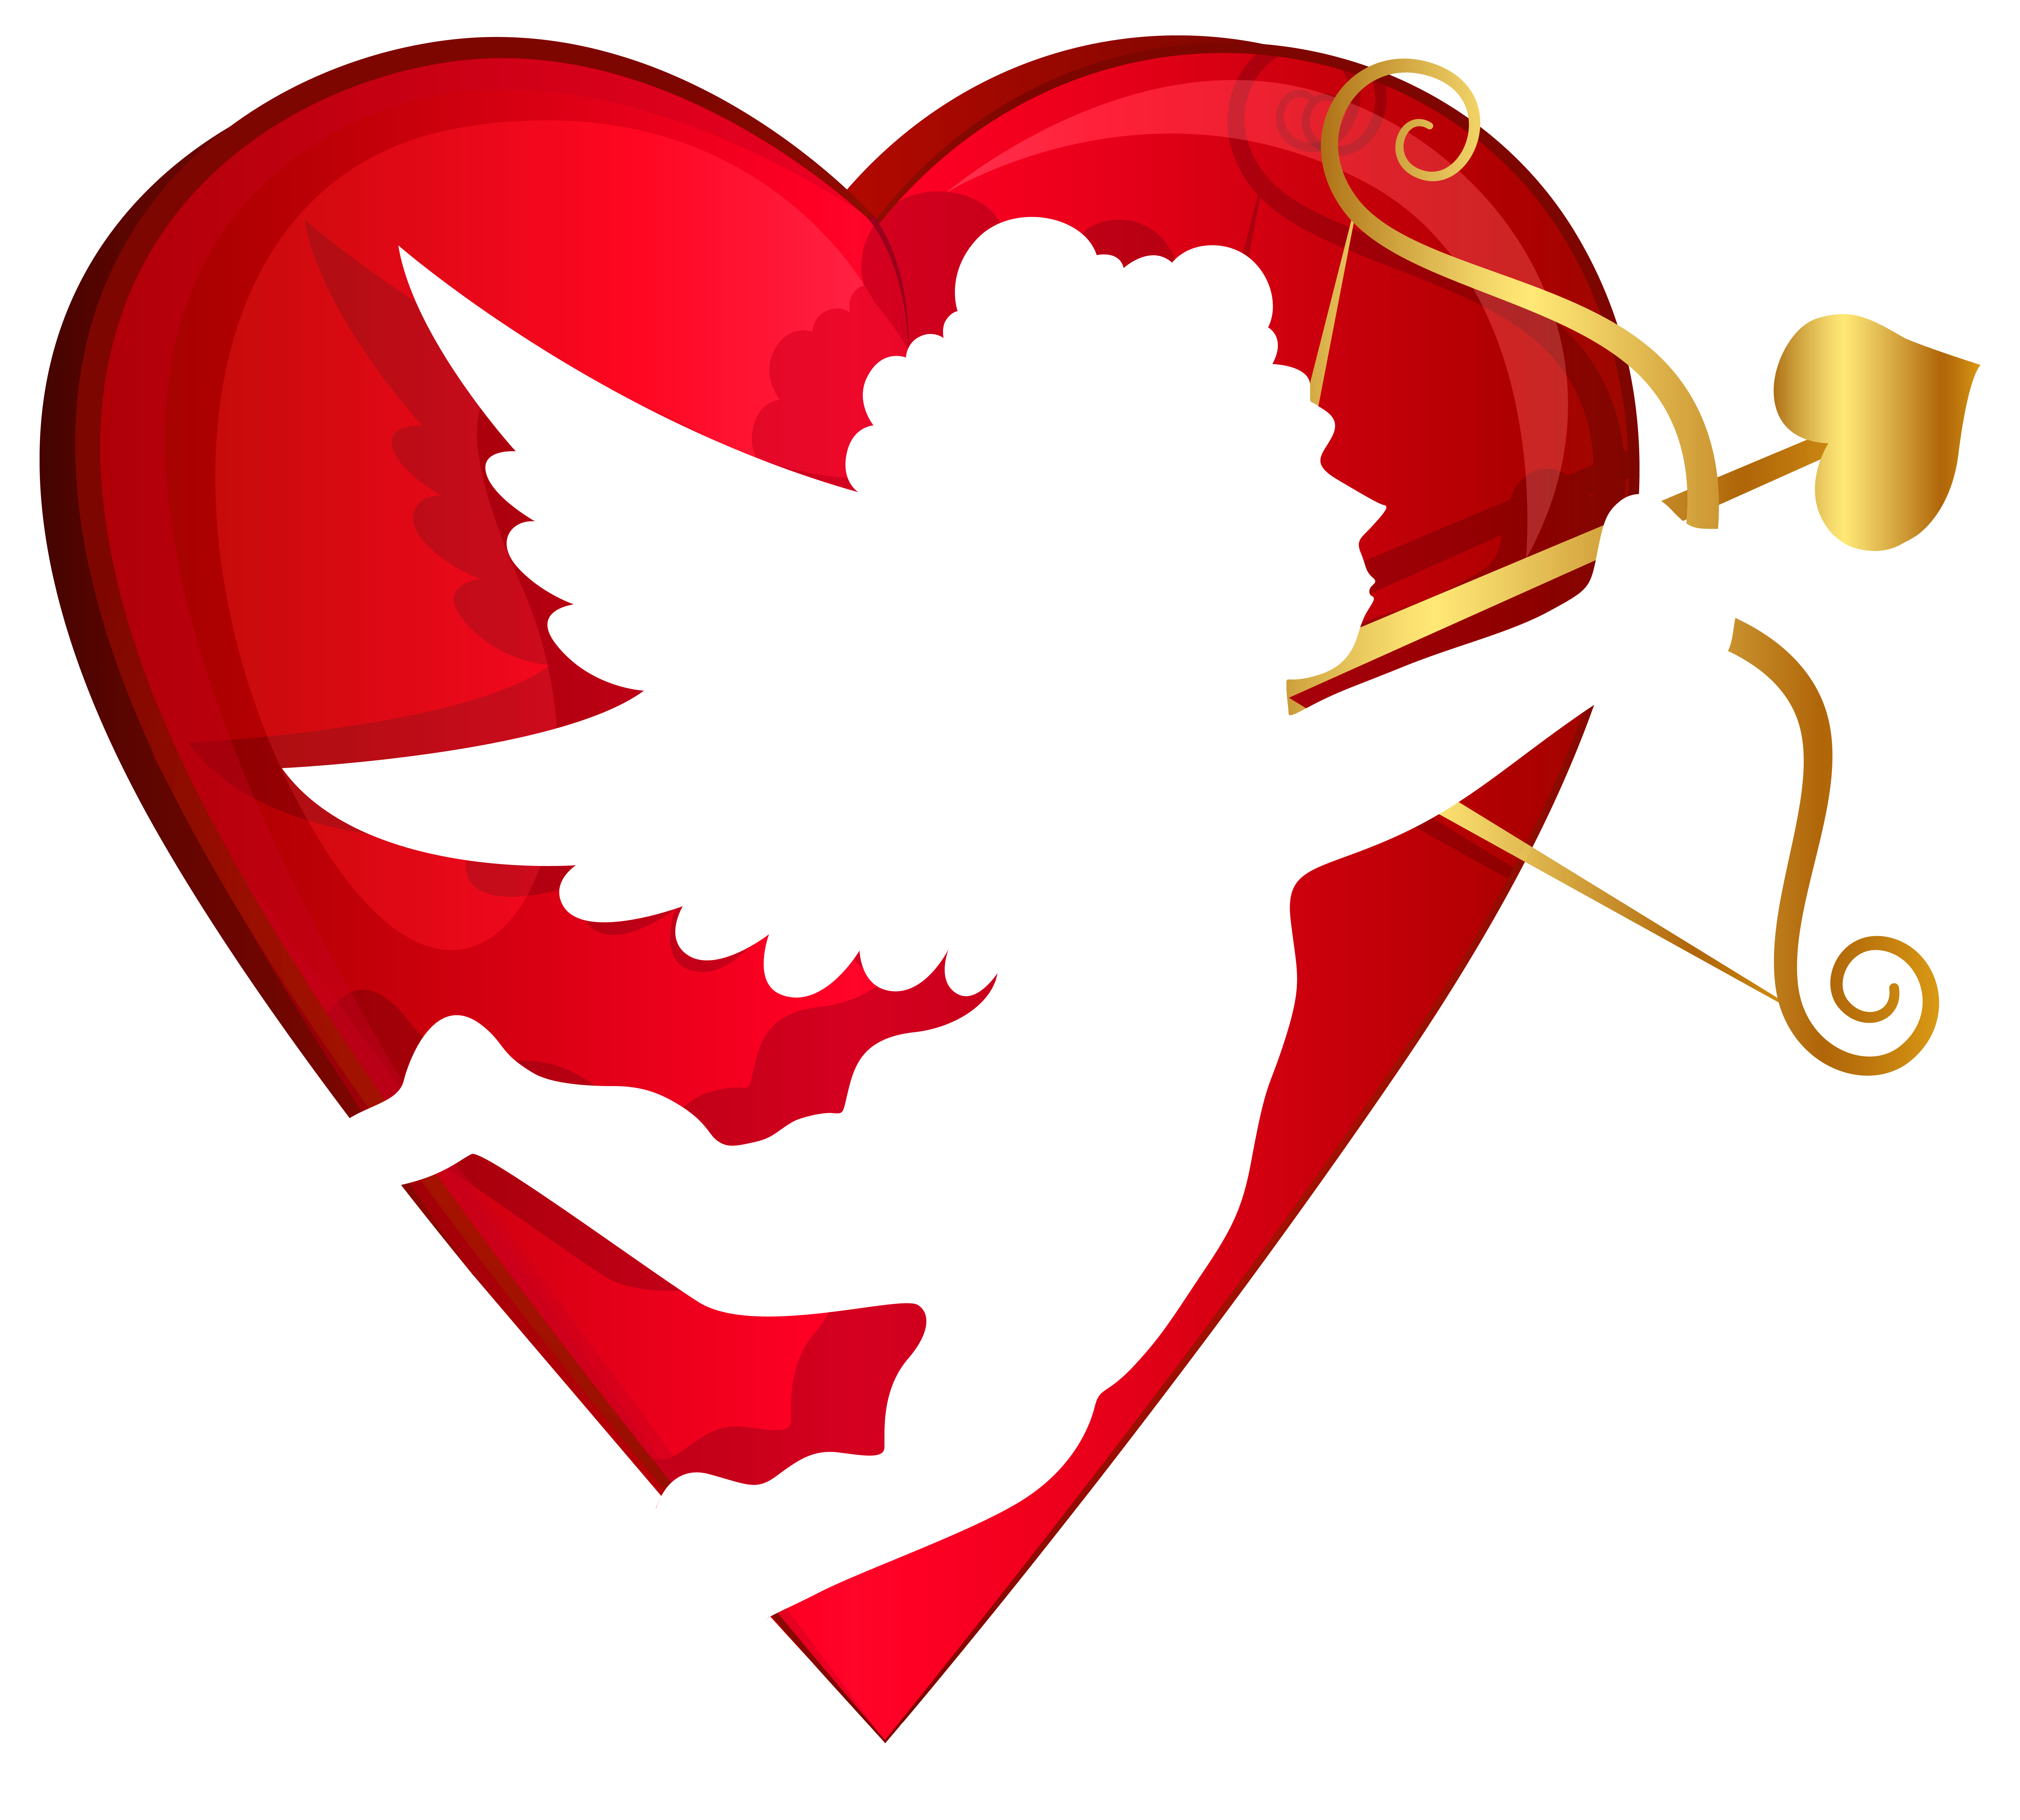 Valentines Day Cupid Clipart   Free download on ClipArtMag